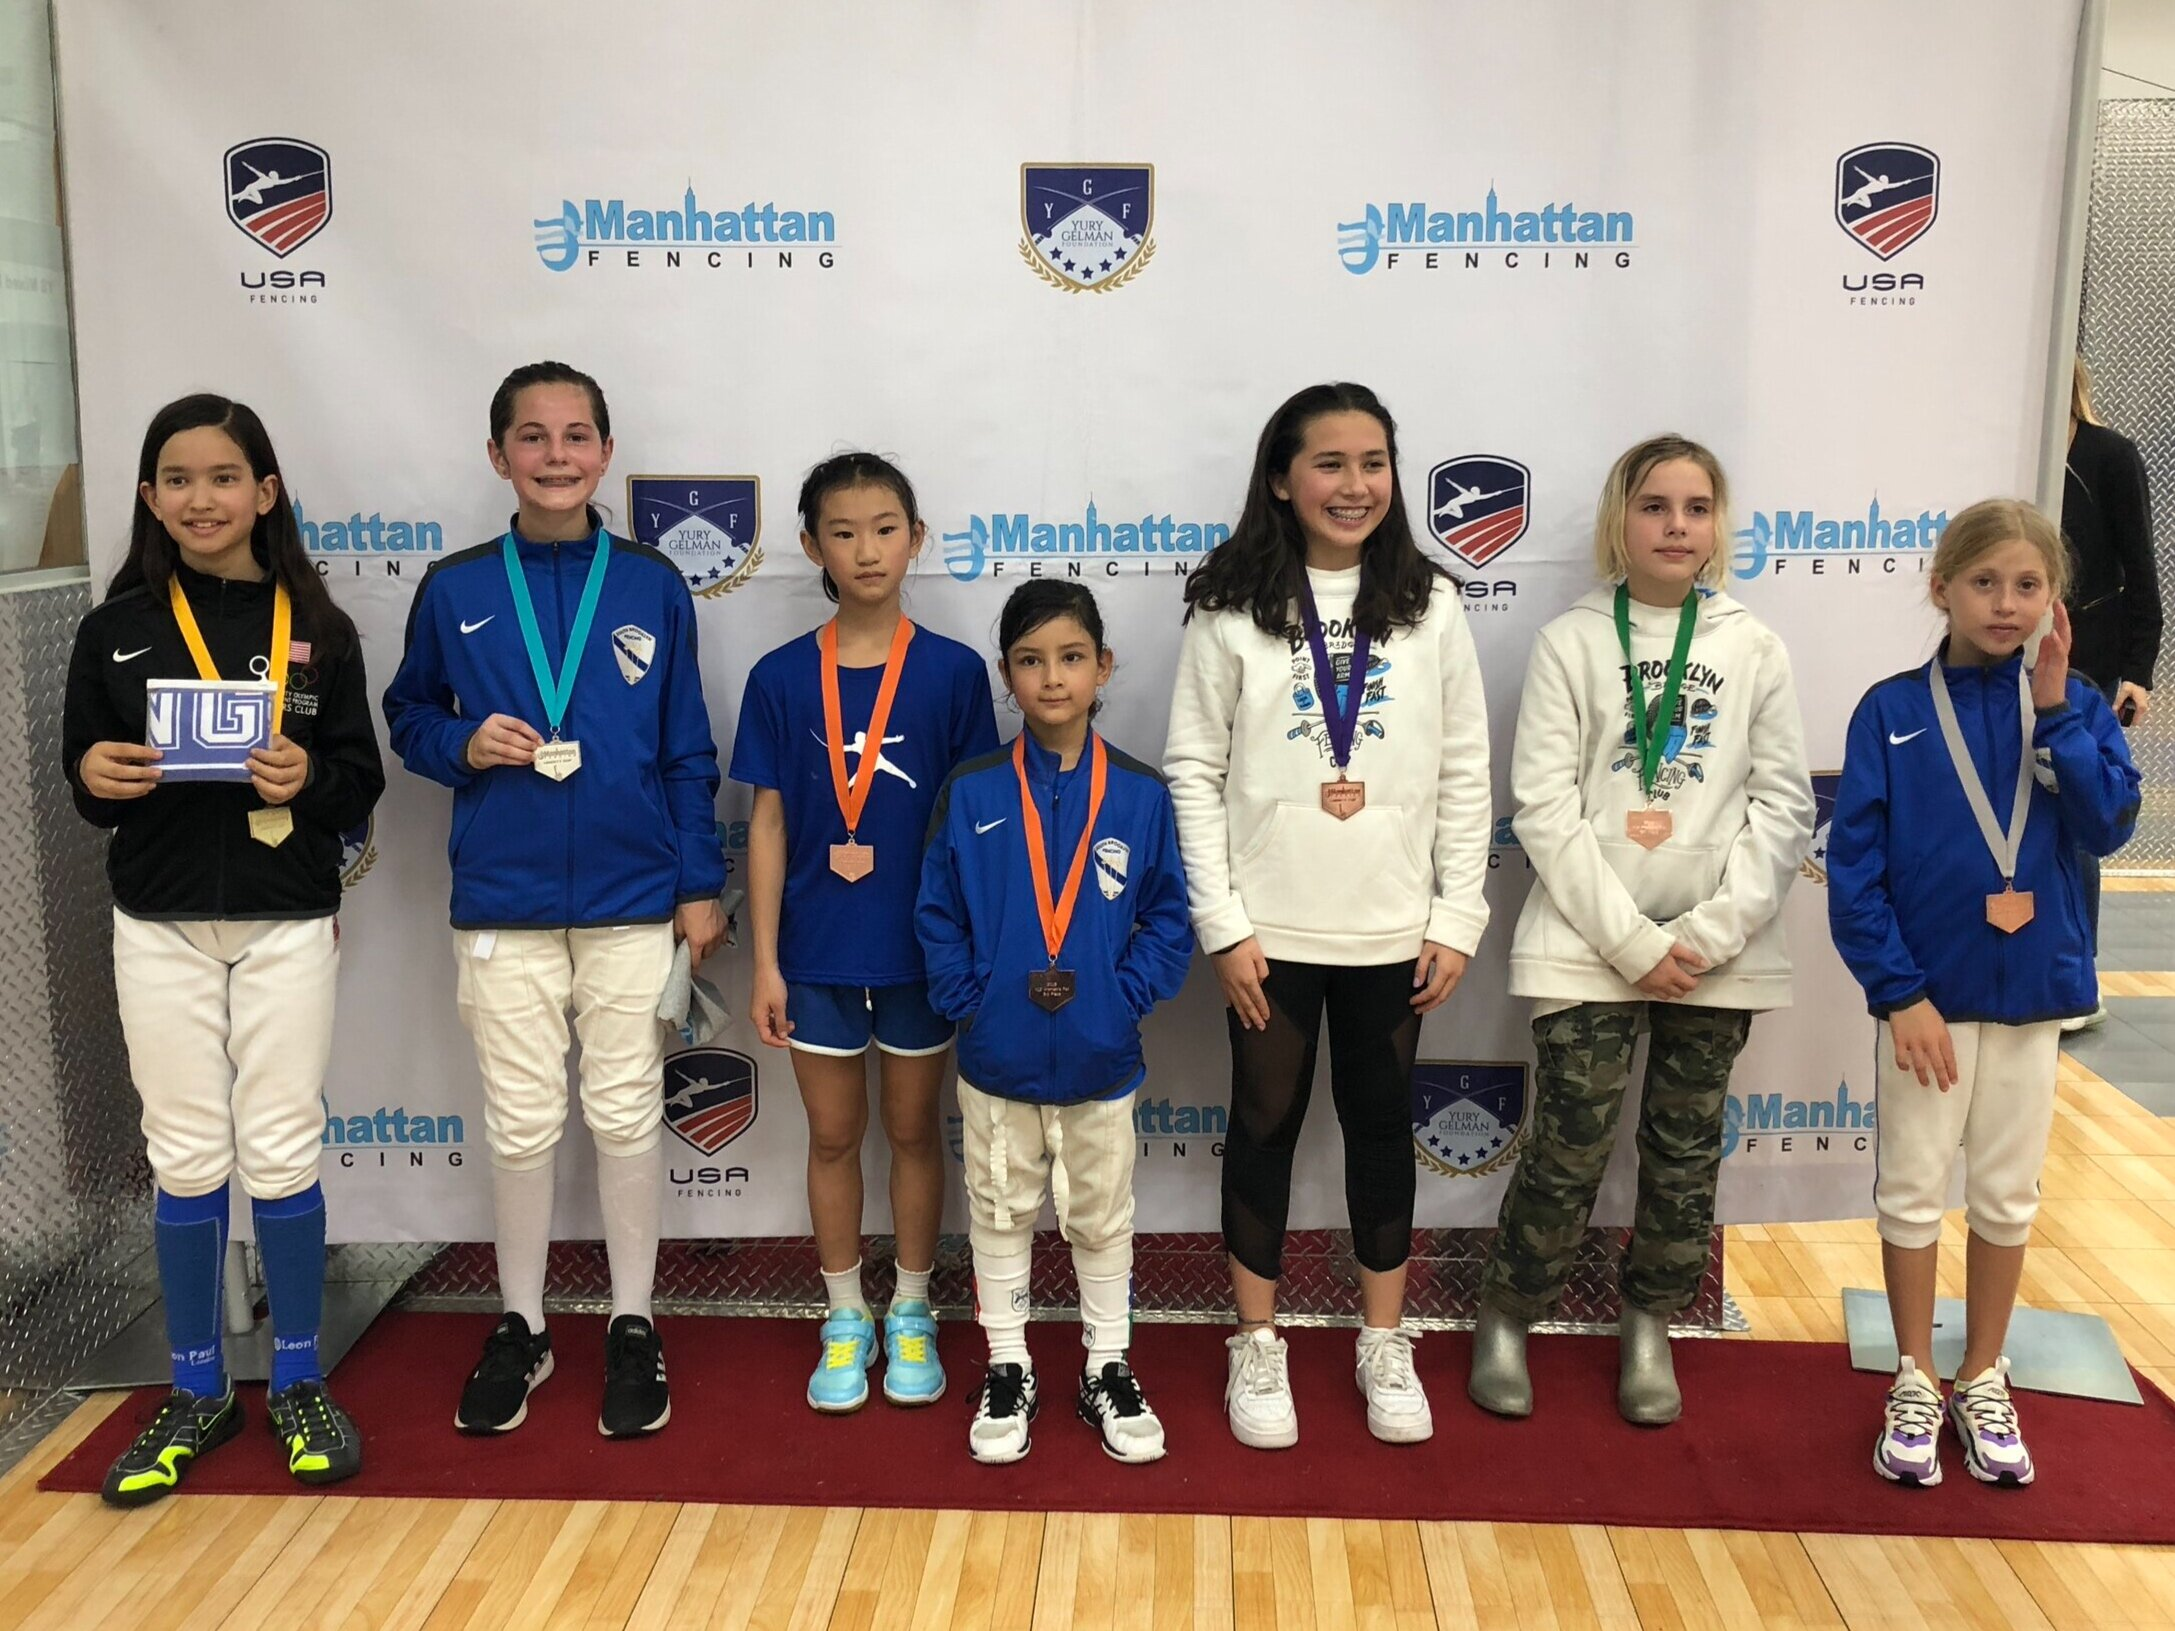 MFC Liberty Cup Y12 women's foil  Xeta Devlin 2nd place Emily Cascone 3rd place Mariia Yurkova 7th place